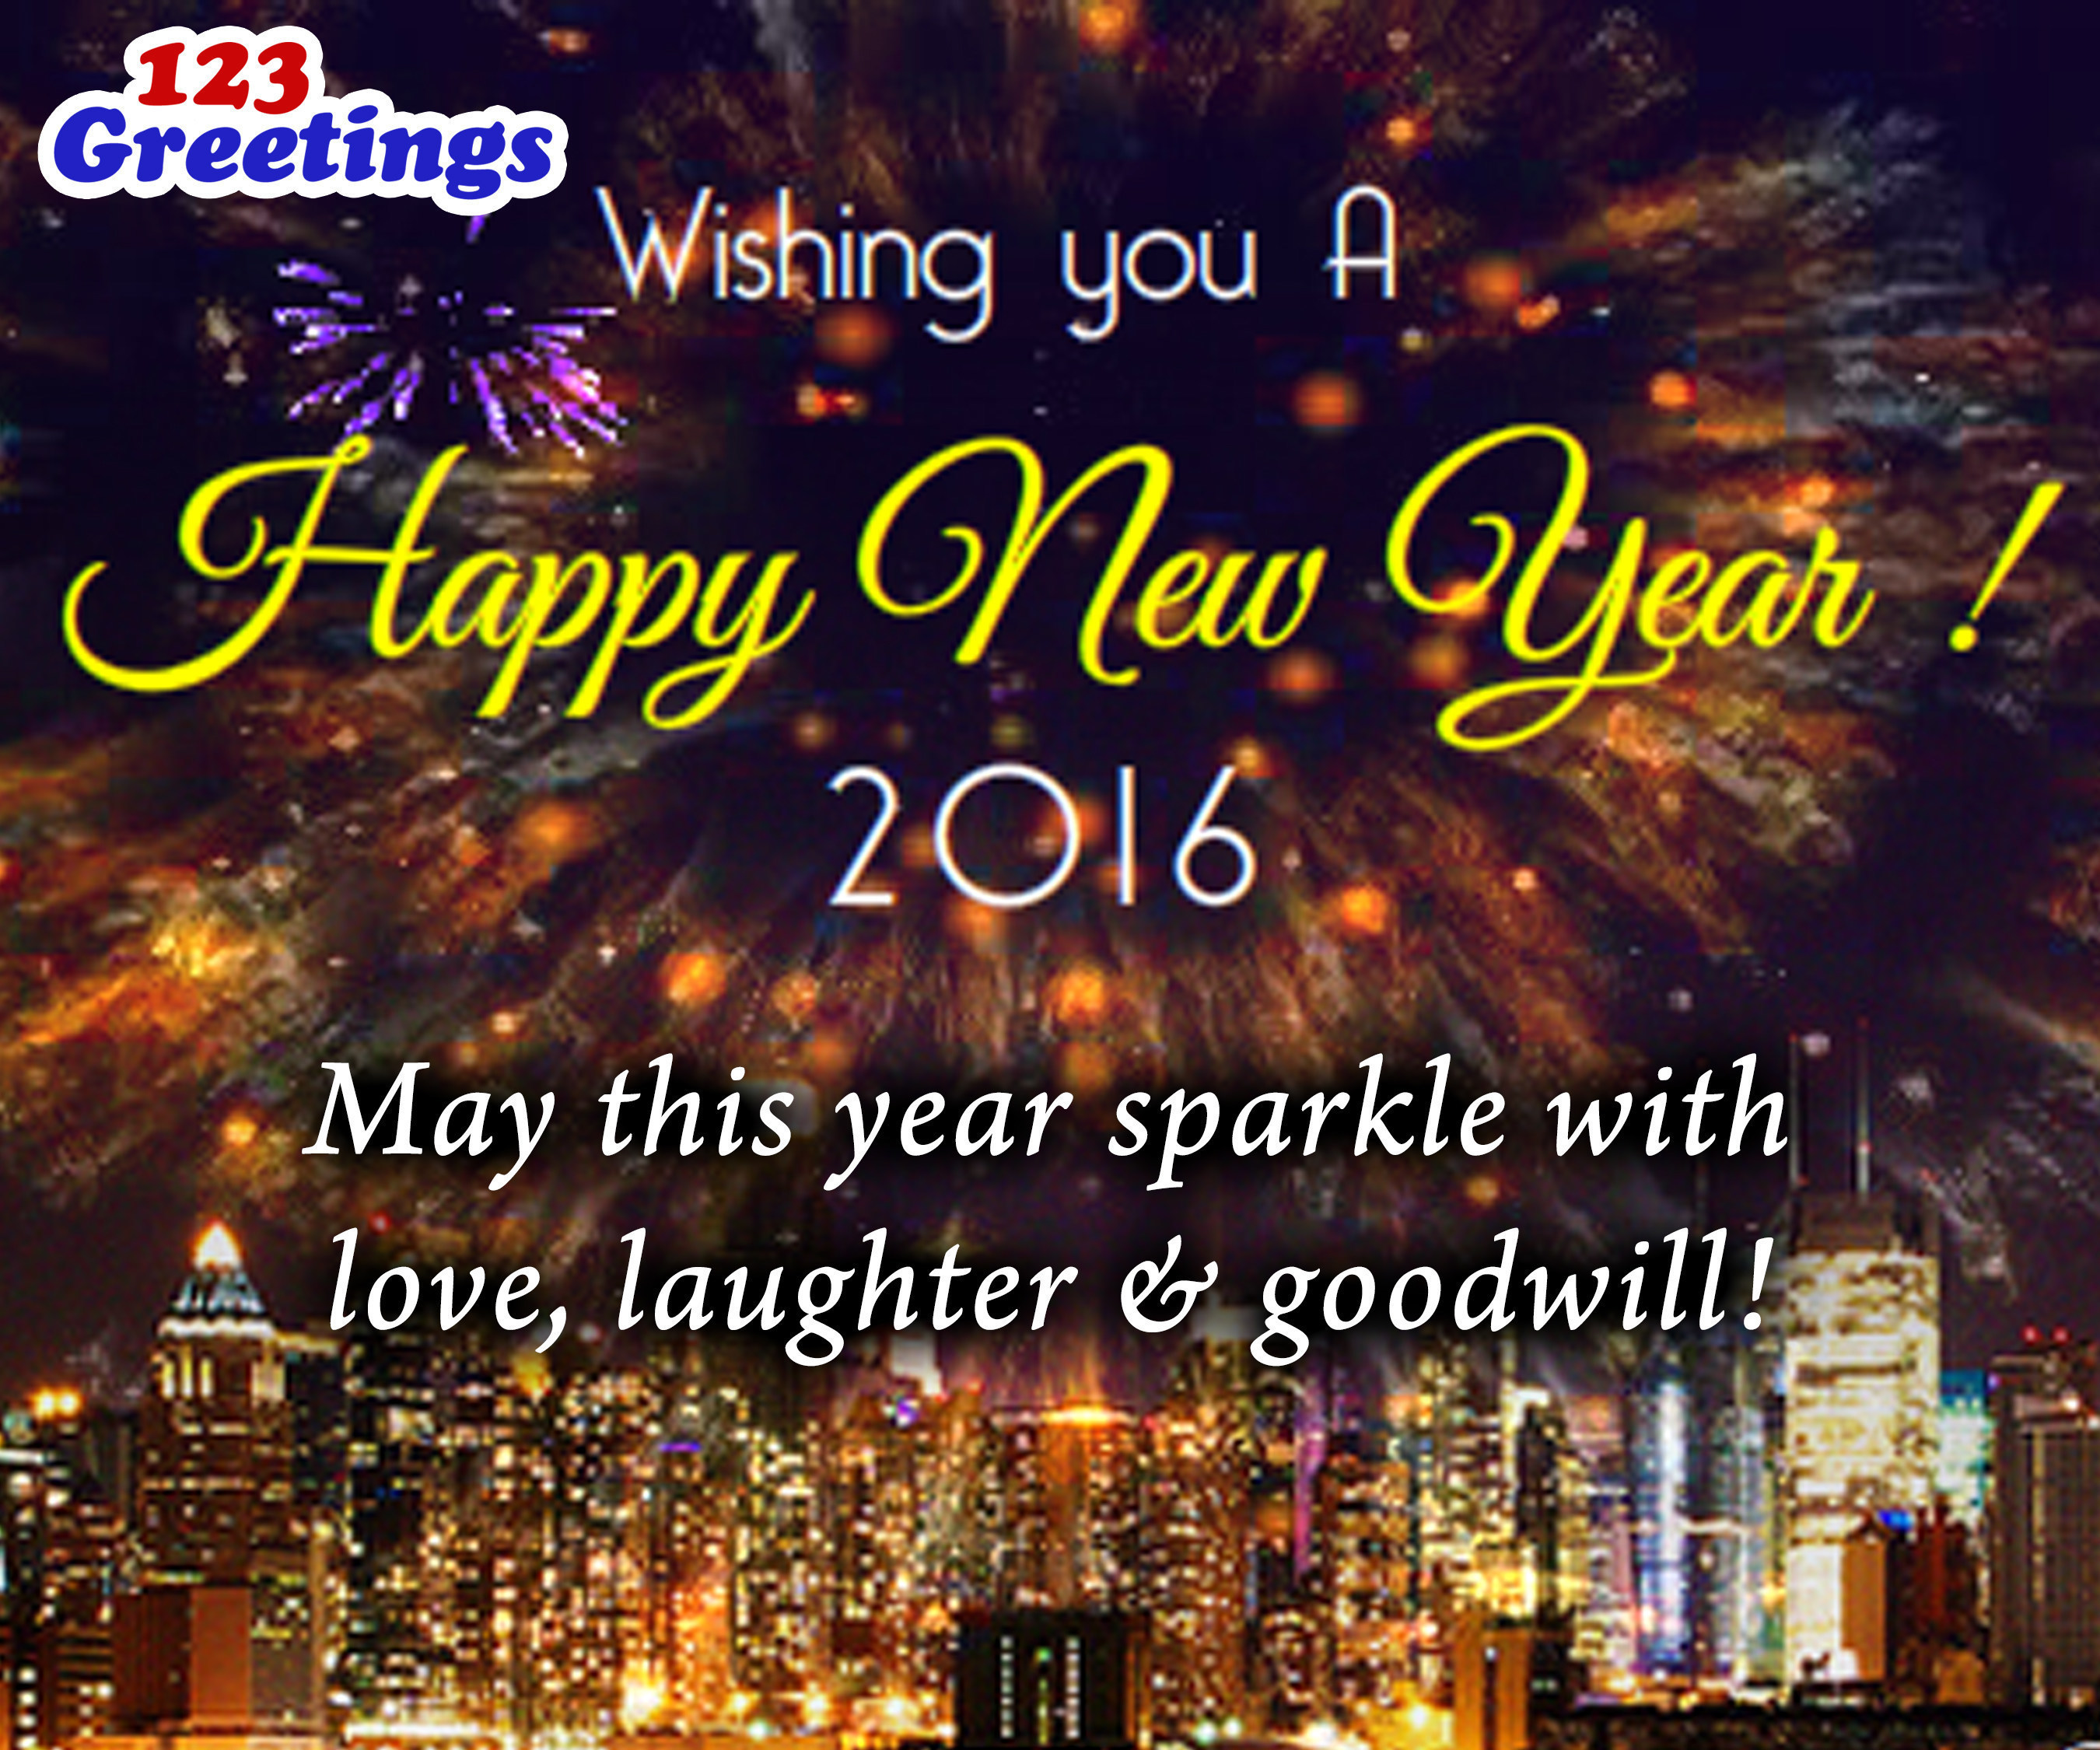 This New Year 123Greetings.Com Urges Its Users To Make A Resolution To Stay Connected With Their